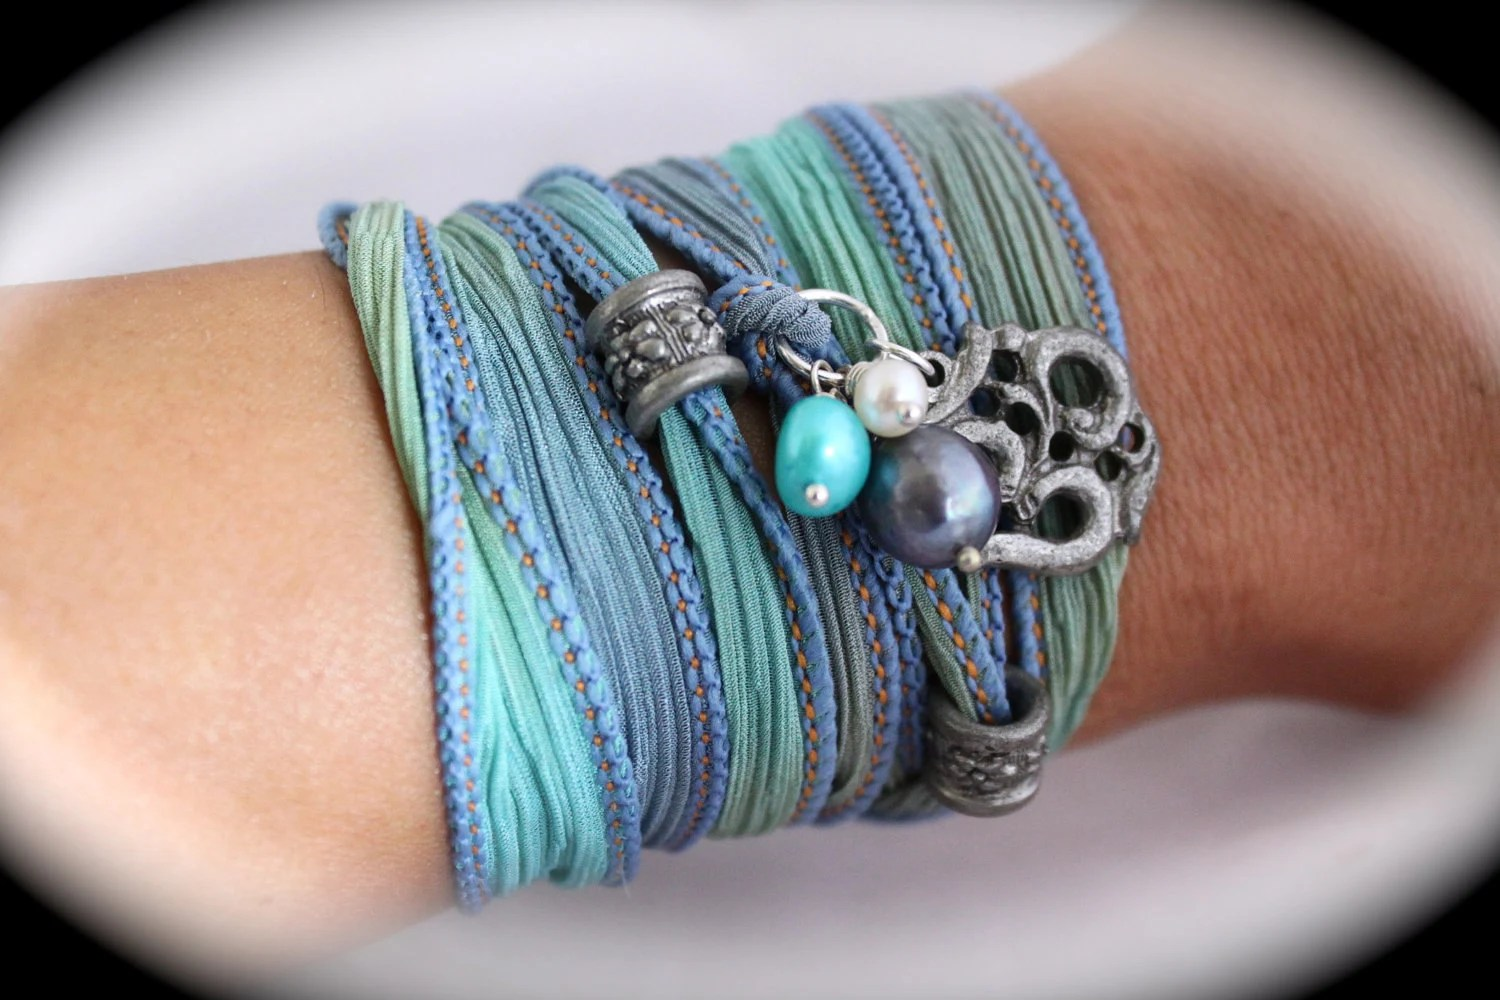 Mermaid. Unique Hand Dyed Silk Ribbon Bracelet with Yoga Charms and Pearls. Knotted Fashion Wrist Wrap. Sterling Silver. Om and Flower Beads